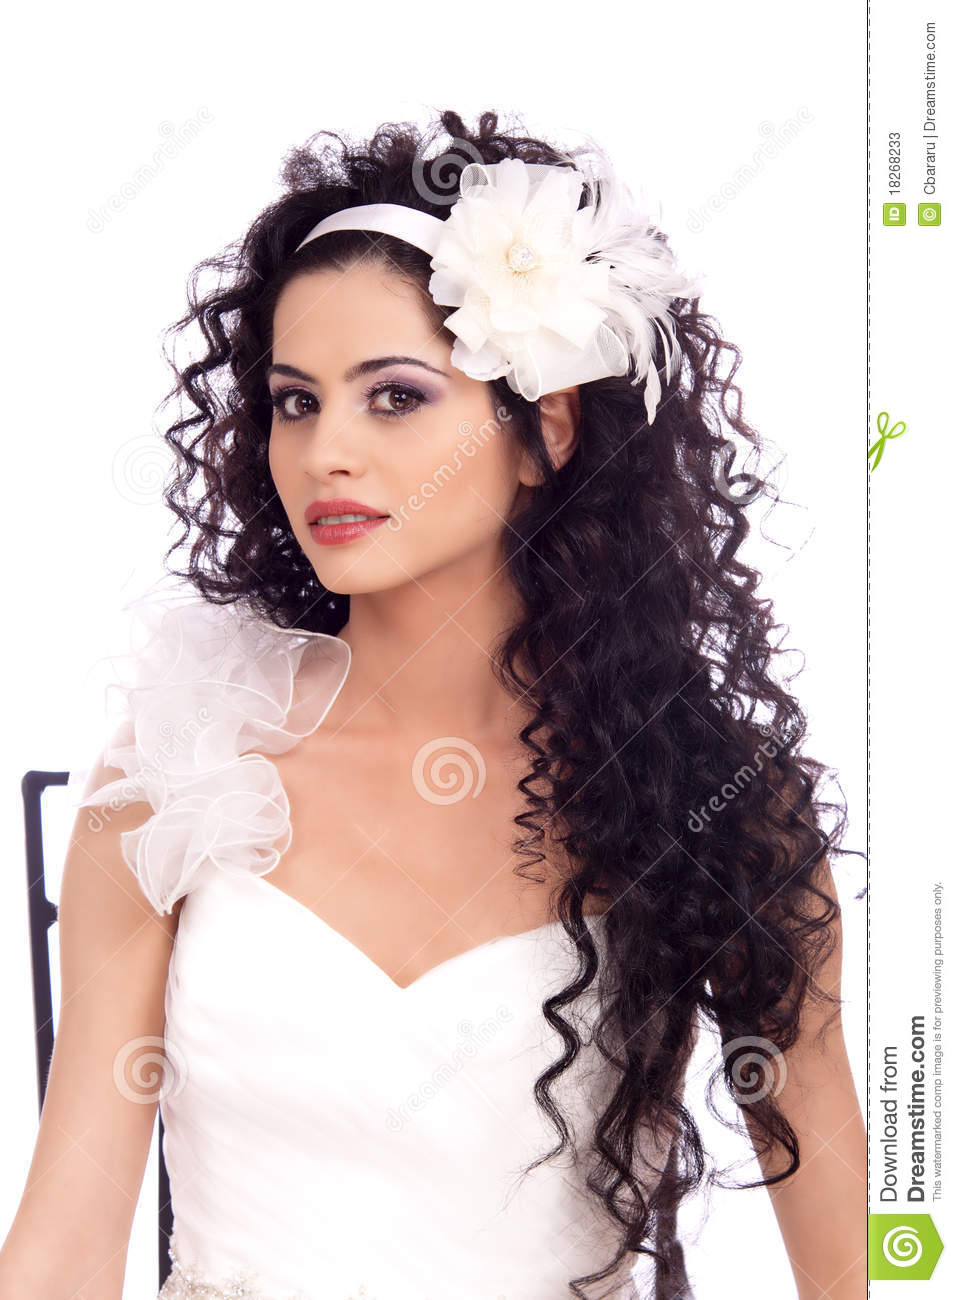 Beautiful Brunette Bride With Long Curly Hair Stock Photos - Image: 18268233